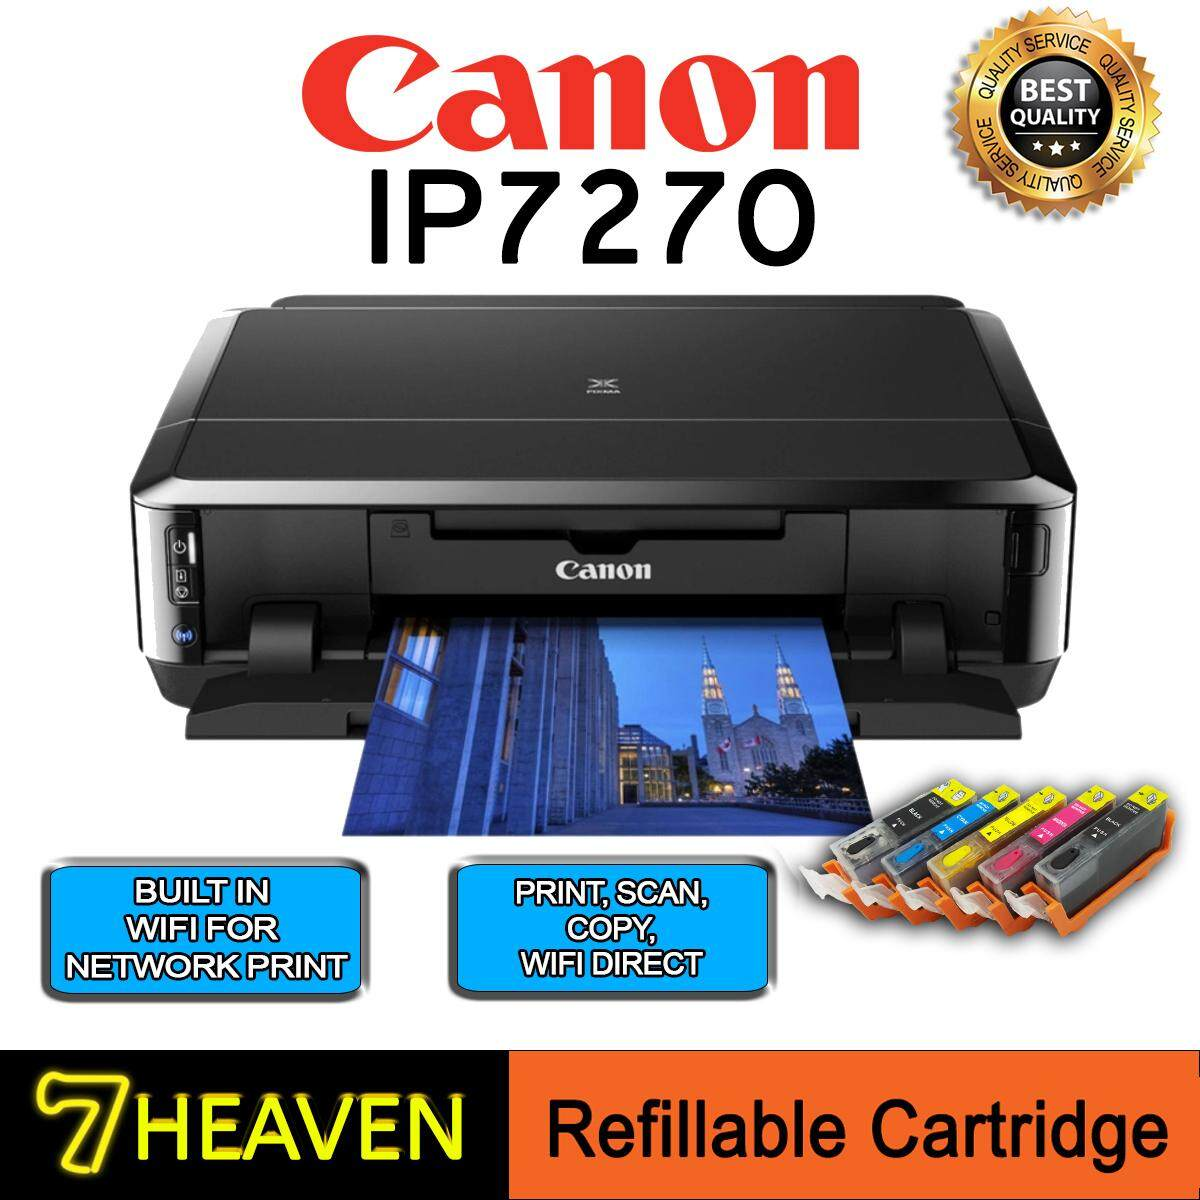 Canon Inkjet Printer Pixma G3010 Print Scan Copy Wifi Multi Function Printers For The Best Prices In Malaysia Ip7270 Single With Refillable Ink Cartridge